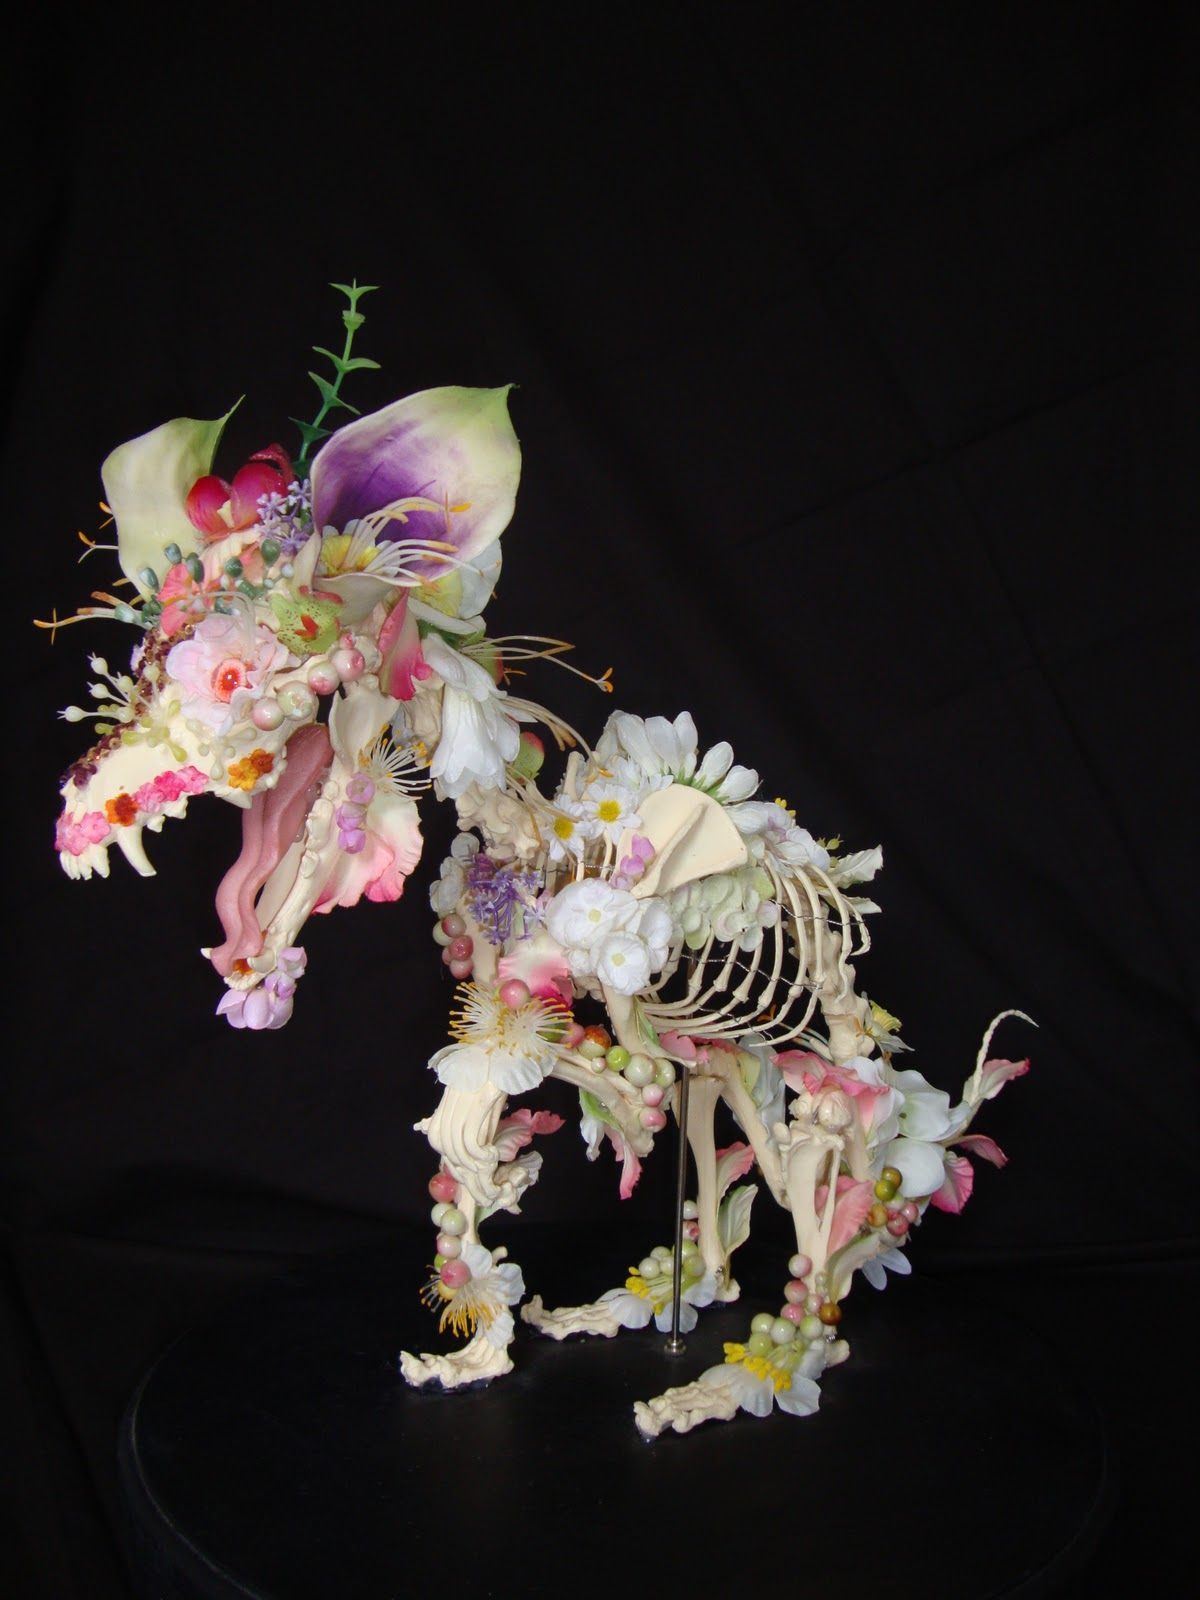 Amsterdam-based sculptor Cedric Laquieze creates flower-skeleton sculptures made from cat and dog skeletons and 'decorated' with artificial flowers: